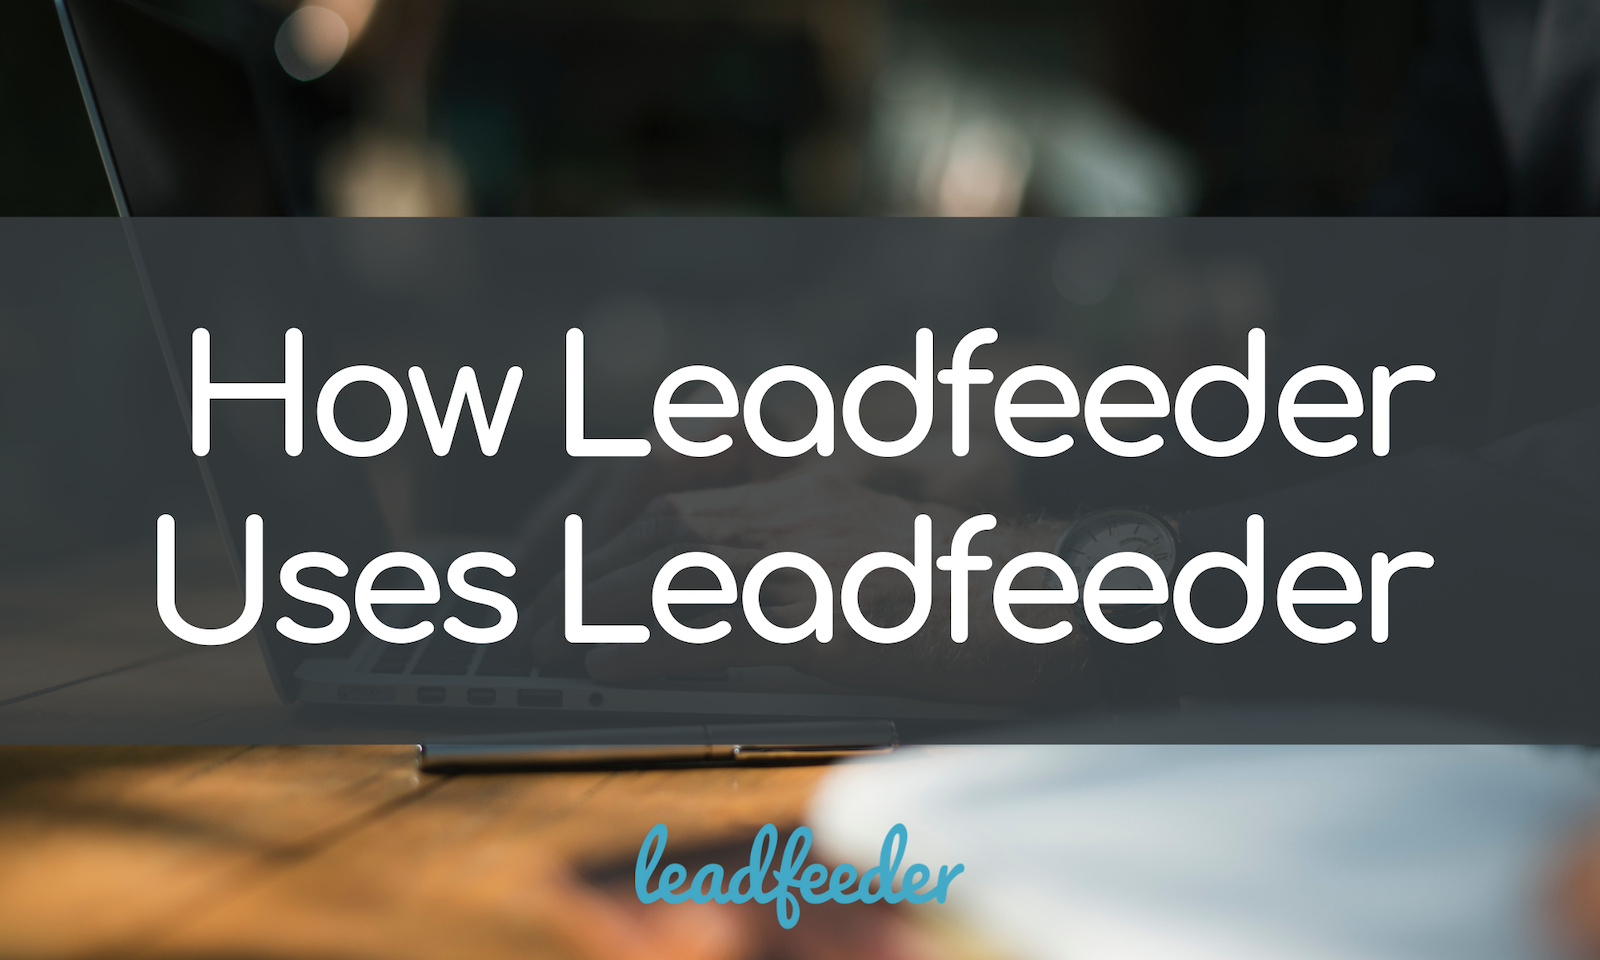 How Leadfeeder Uses Leadfeeder